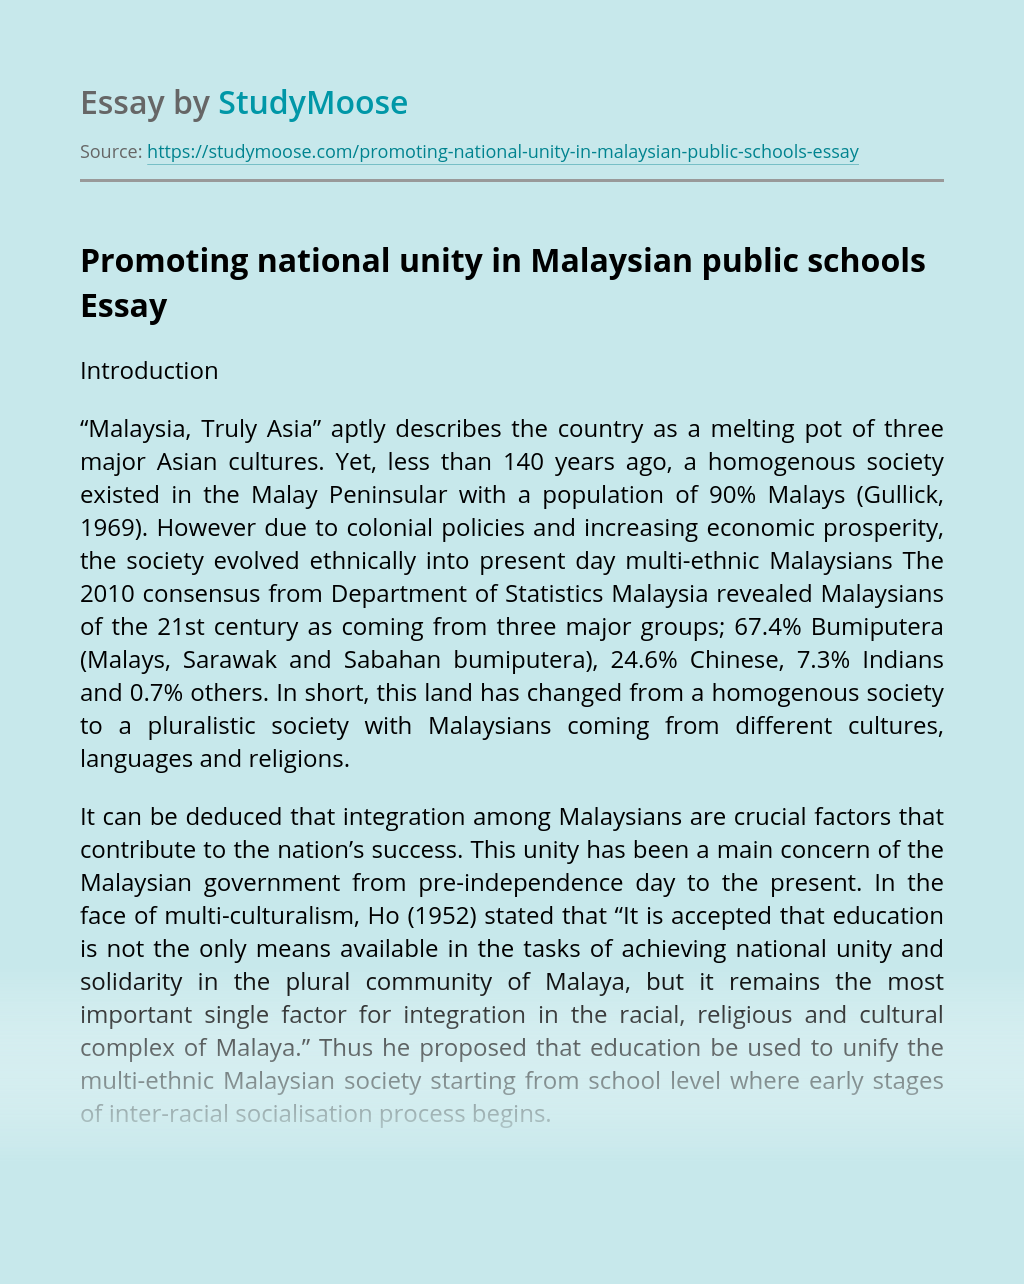 Promoting national unity in Malaysian public schools